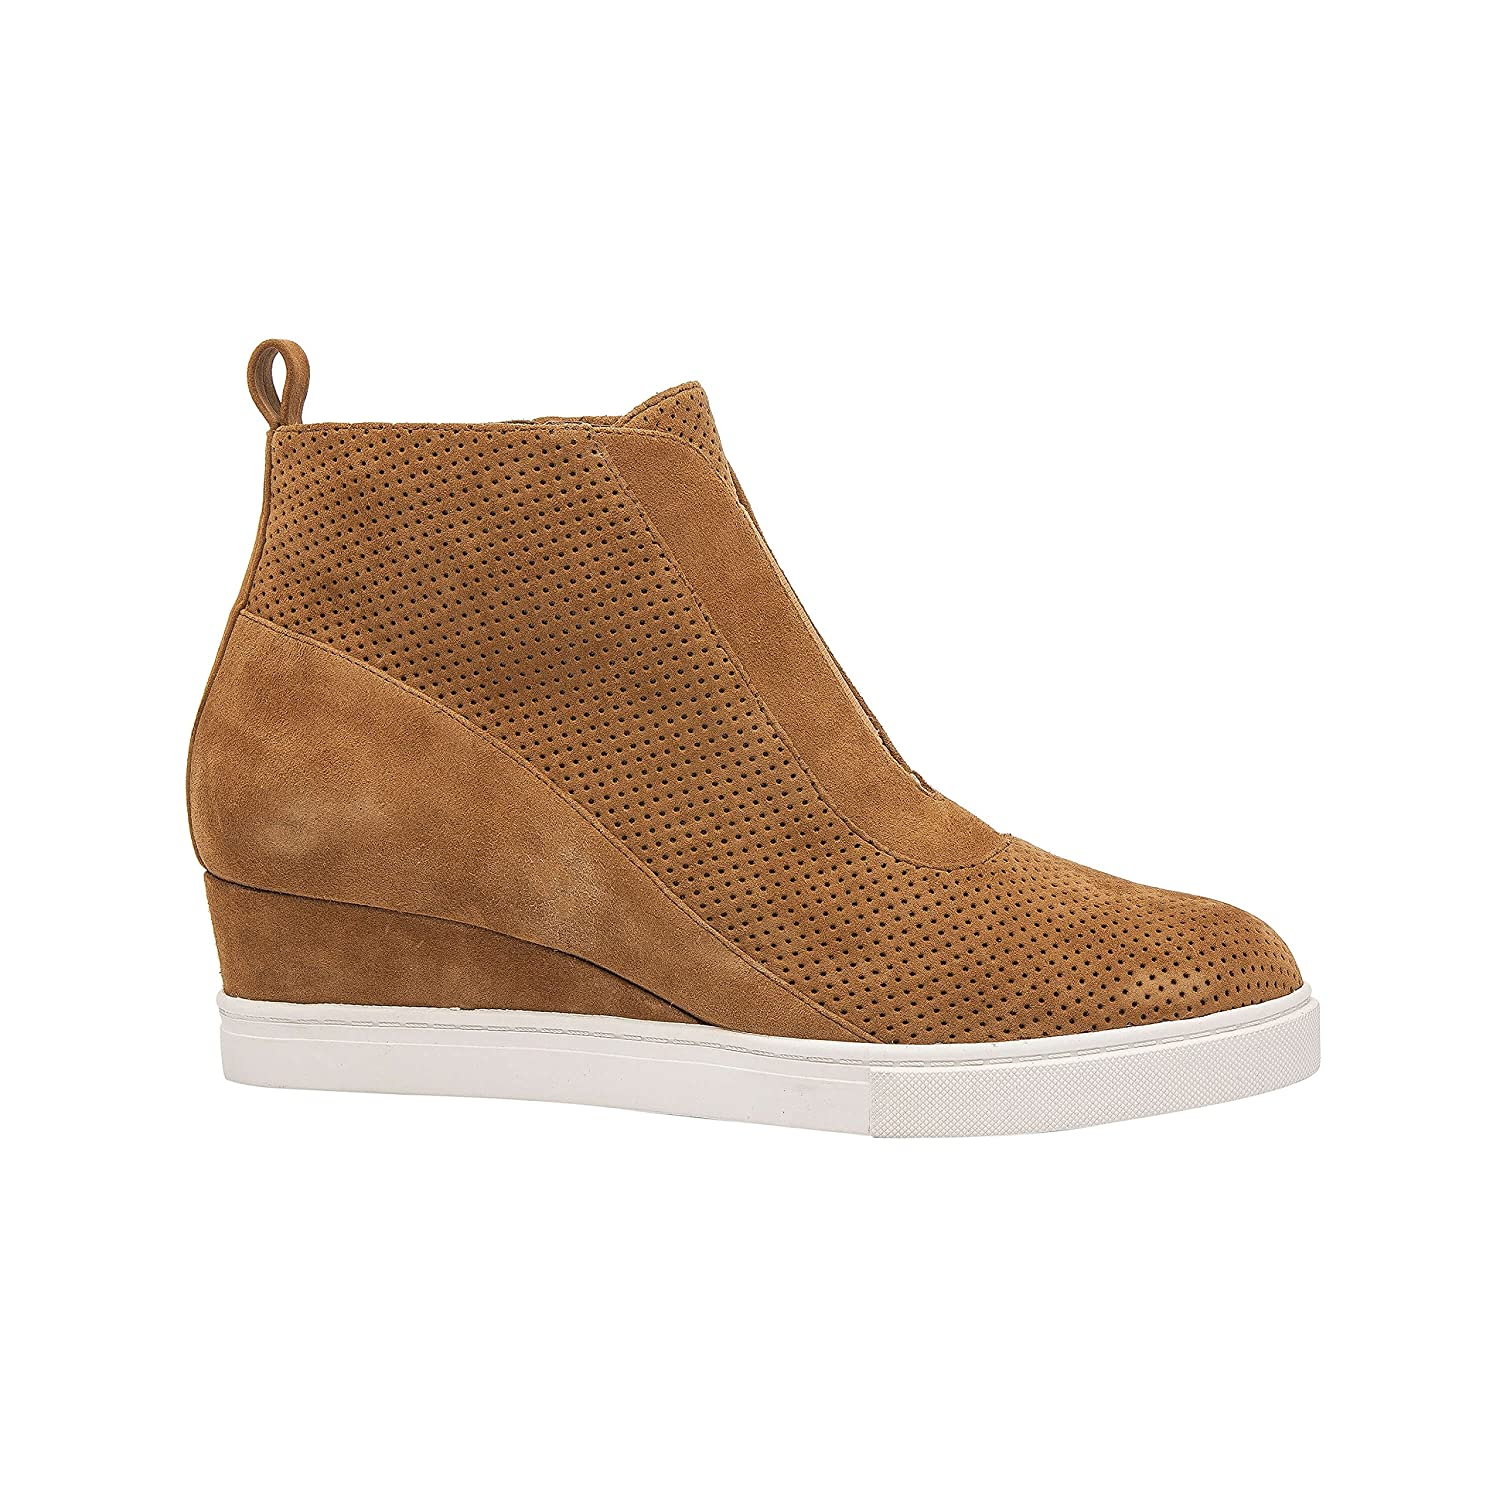 Linea Paolo Anna | Low Heel Designer Platform Wedge Sneaker Bootie Comfortable Fashion Ankle Boot (New Fall) B07F6QR7LP 10 M US|Toffee Perforated Suede